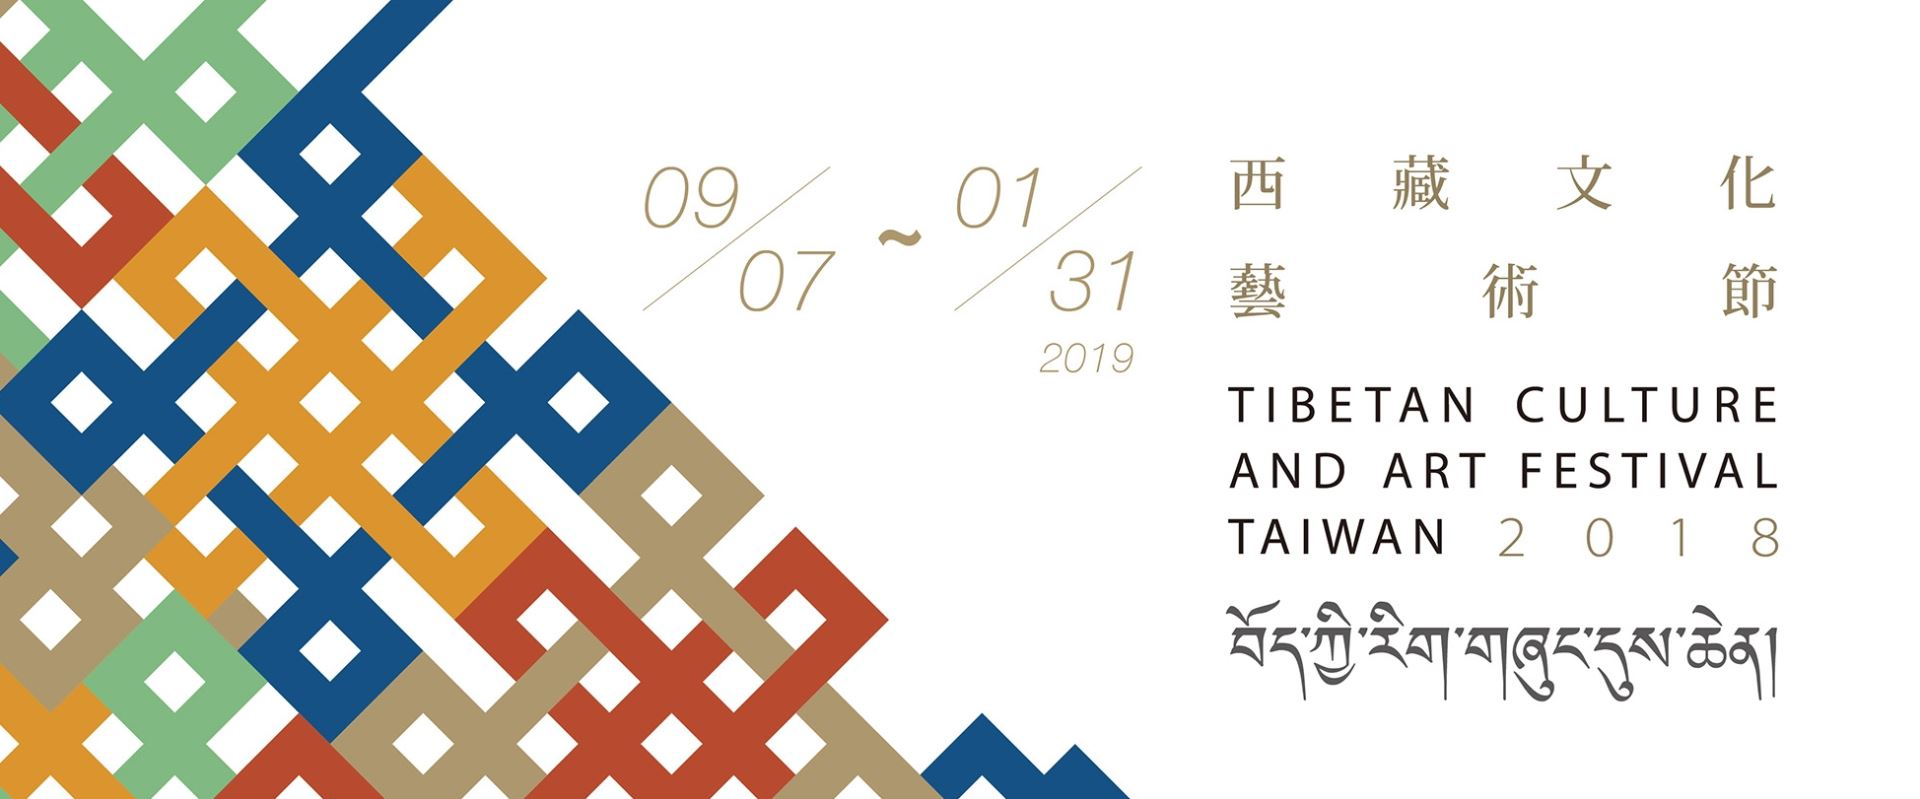 Cultural festival in Taiwan to showcase the many charms of Tibet[另開新視窗]